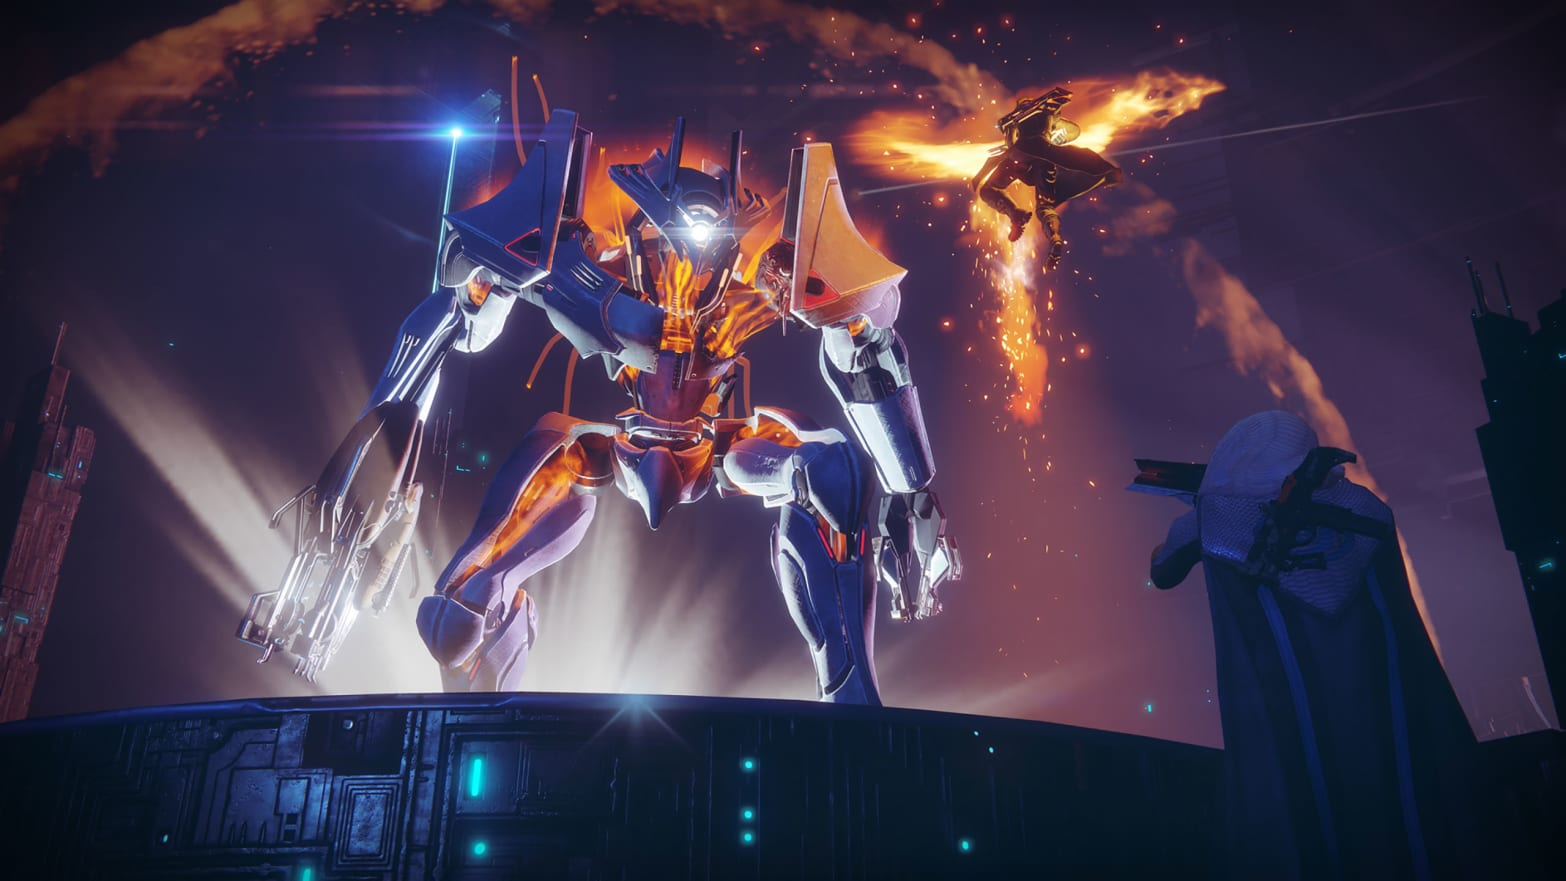 'Destiny 2' Wants to Be the Last Game You Ever Play